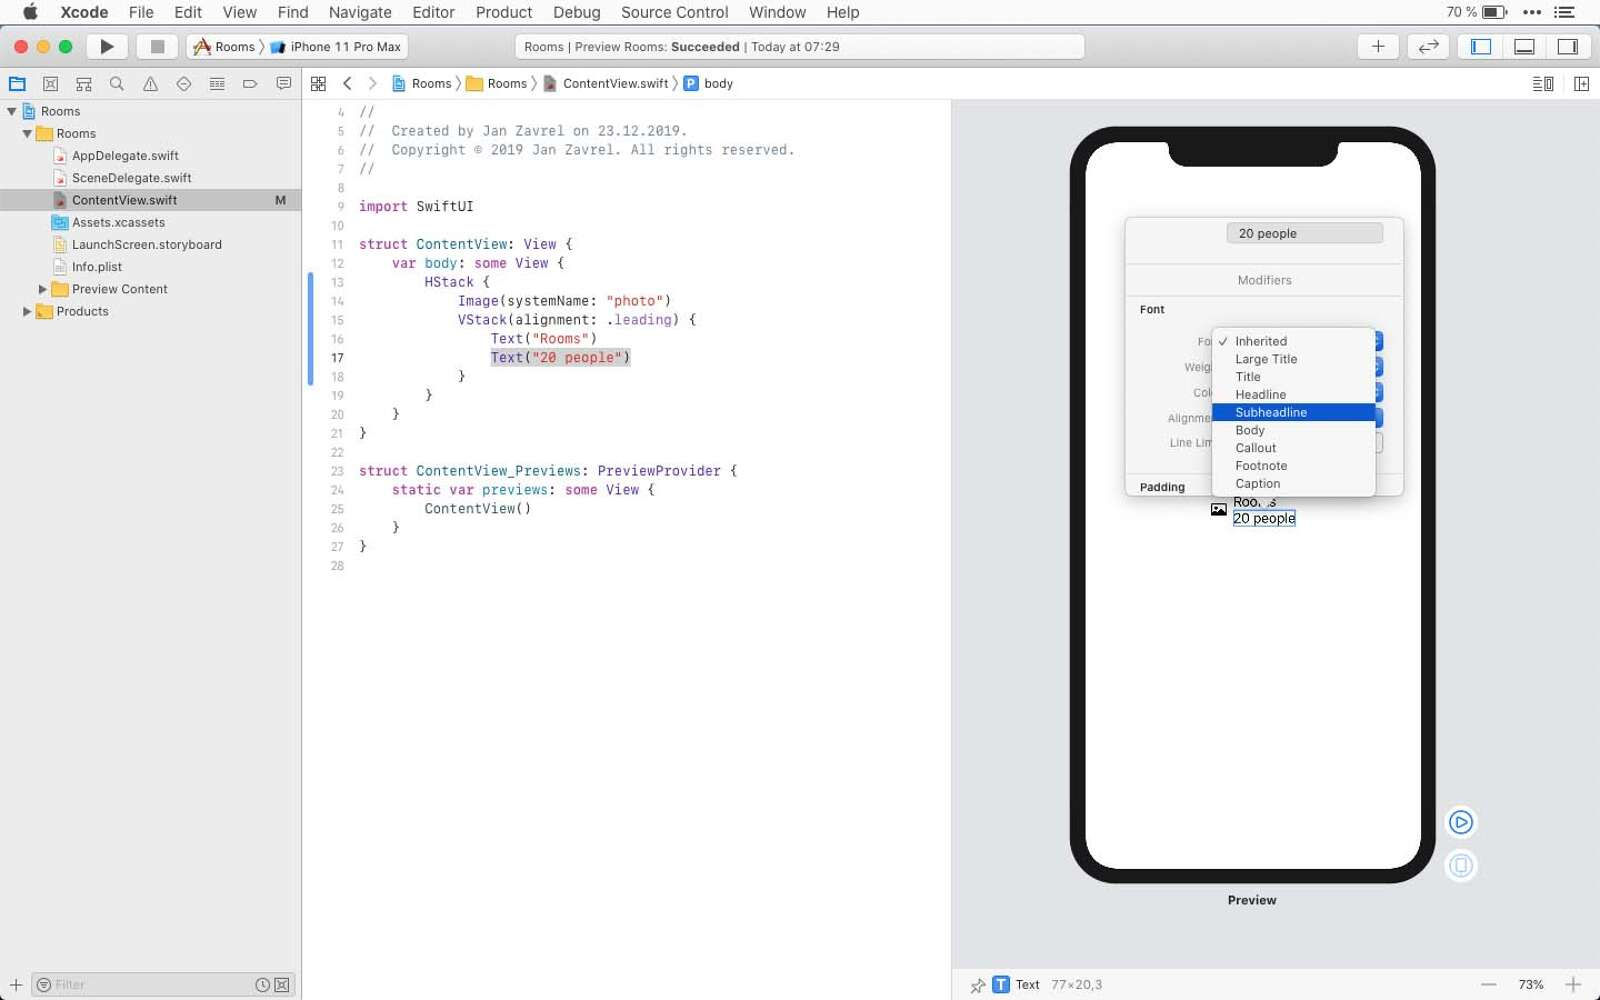 https://res.cloudinary.com/codewithjan/image/upload/v1578422456/swiftui-by-examples/swiftui-by-examples-21.jpg